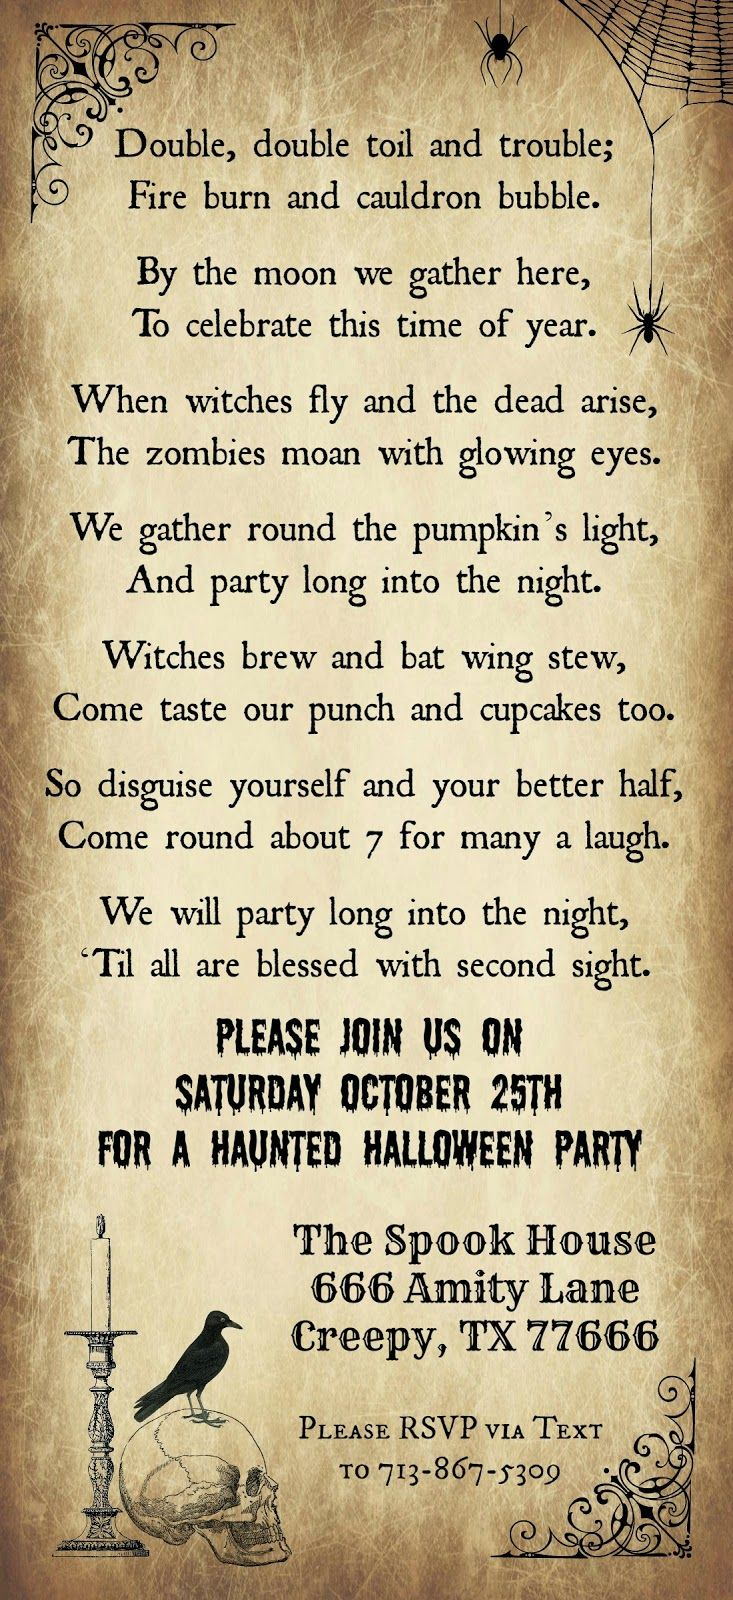 print your halloween party invitations with our free template includes an original halloween poem - Free Halloween Invite Templates